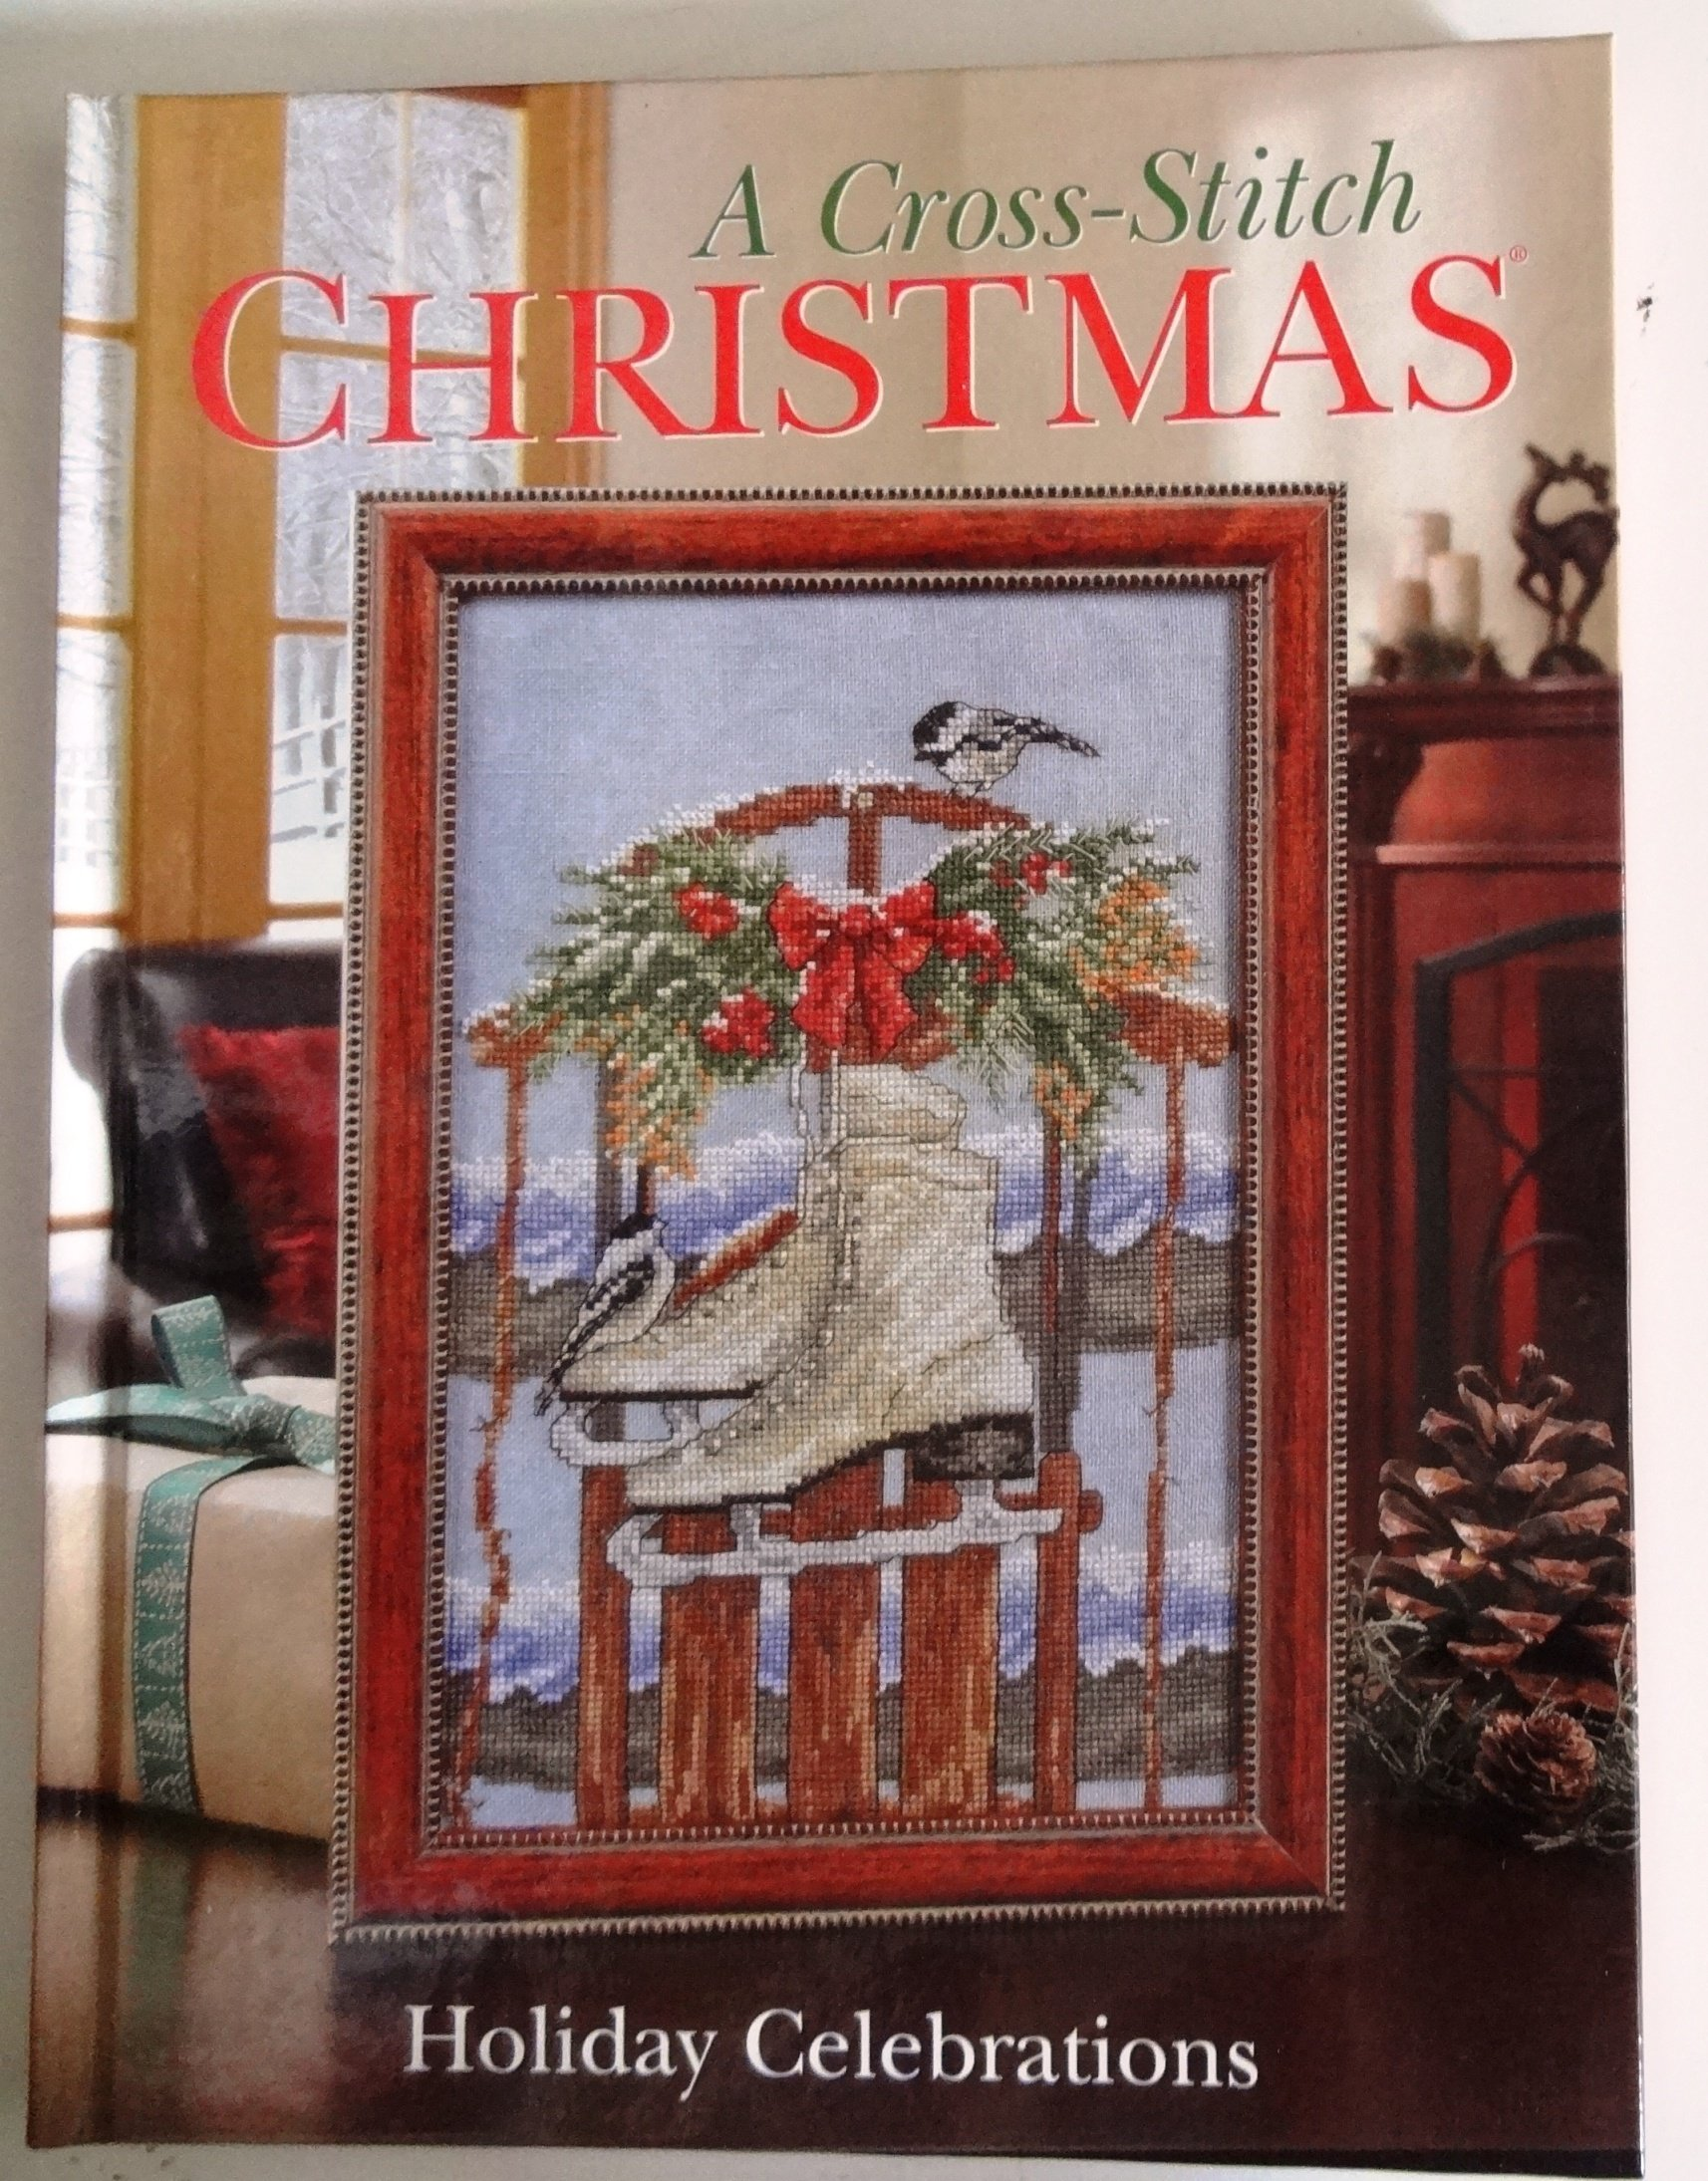 A Cross Stitch Christmas: Holiday Celebrations (Craftways): Amazon